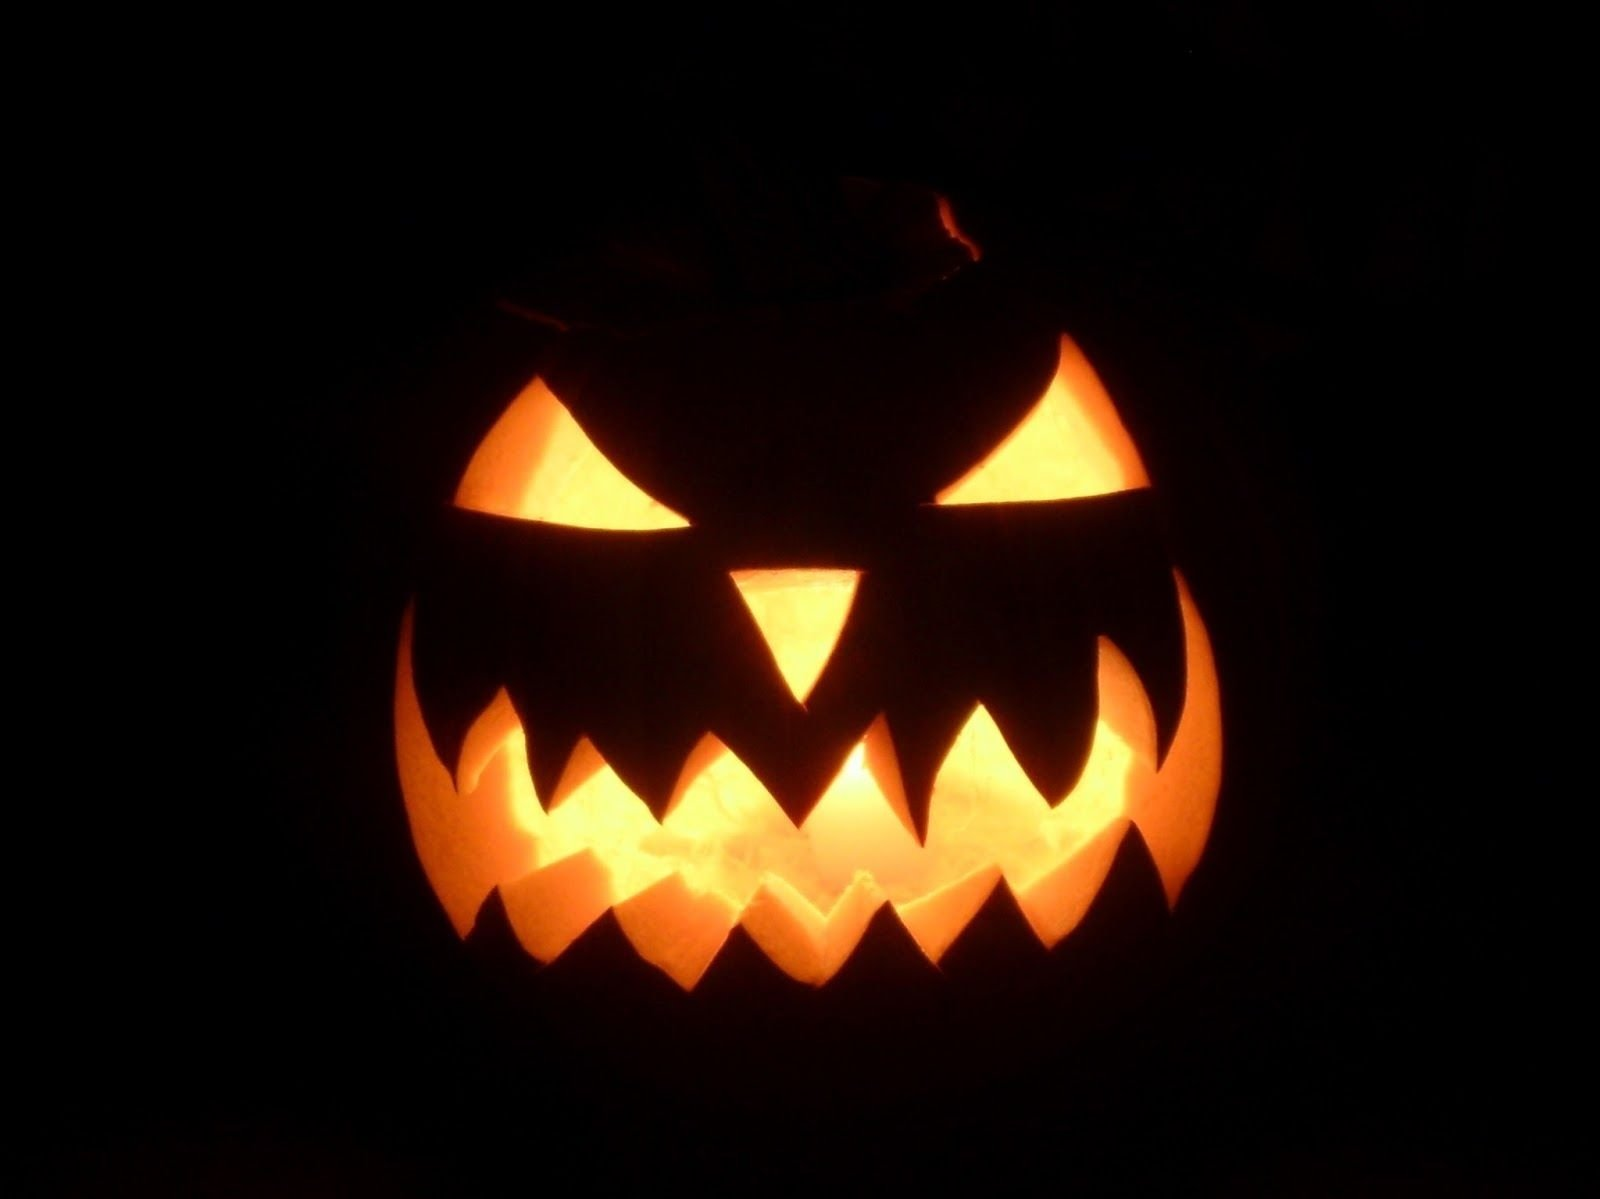 10 Stunning Jack O Lantern Faces Ideas simple silly scary jack o lantern faces images pictures wallpapers 6 1 2020